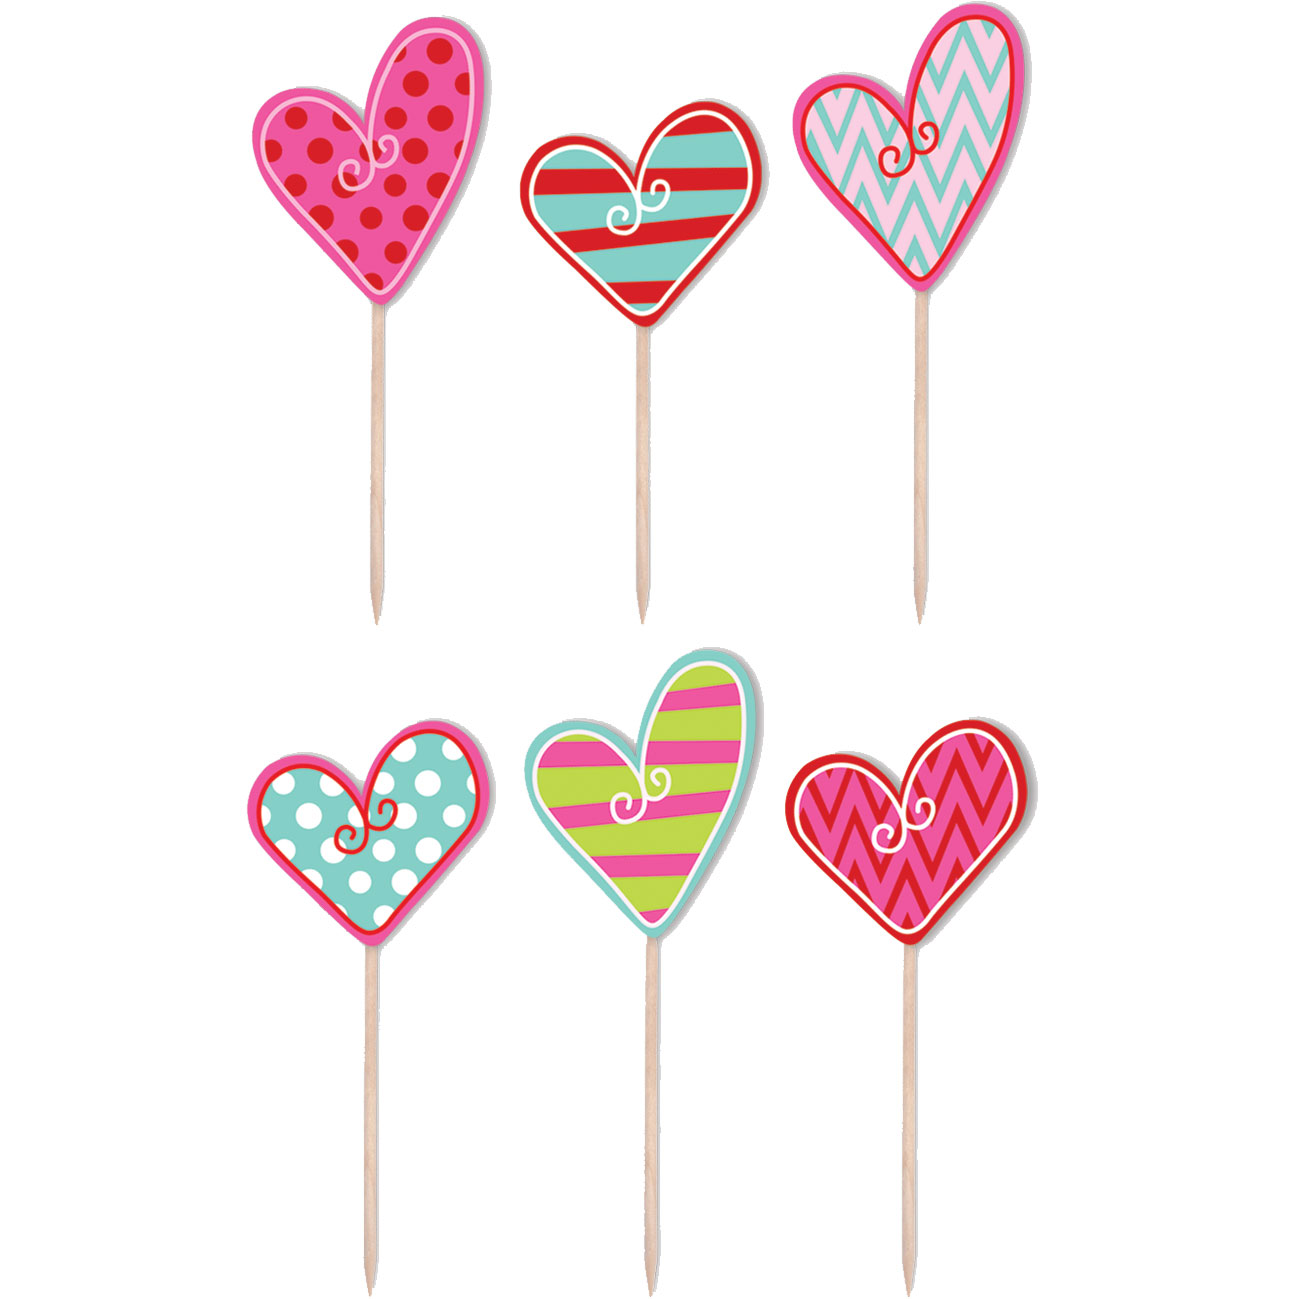 Heart-Party-Picks-Flatlay-by-Party-Partners